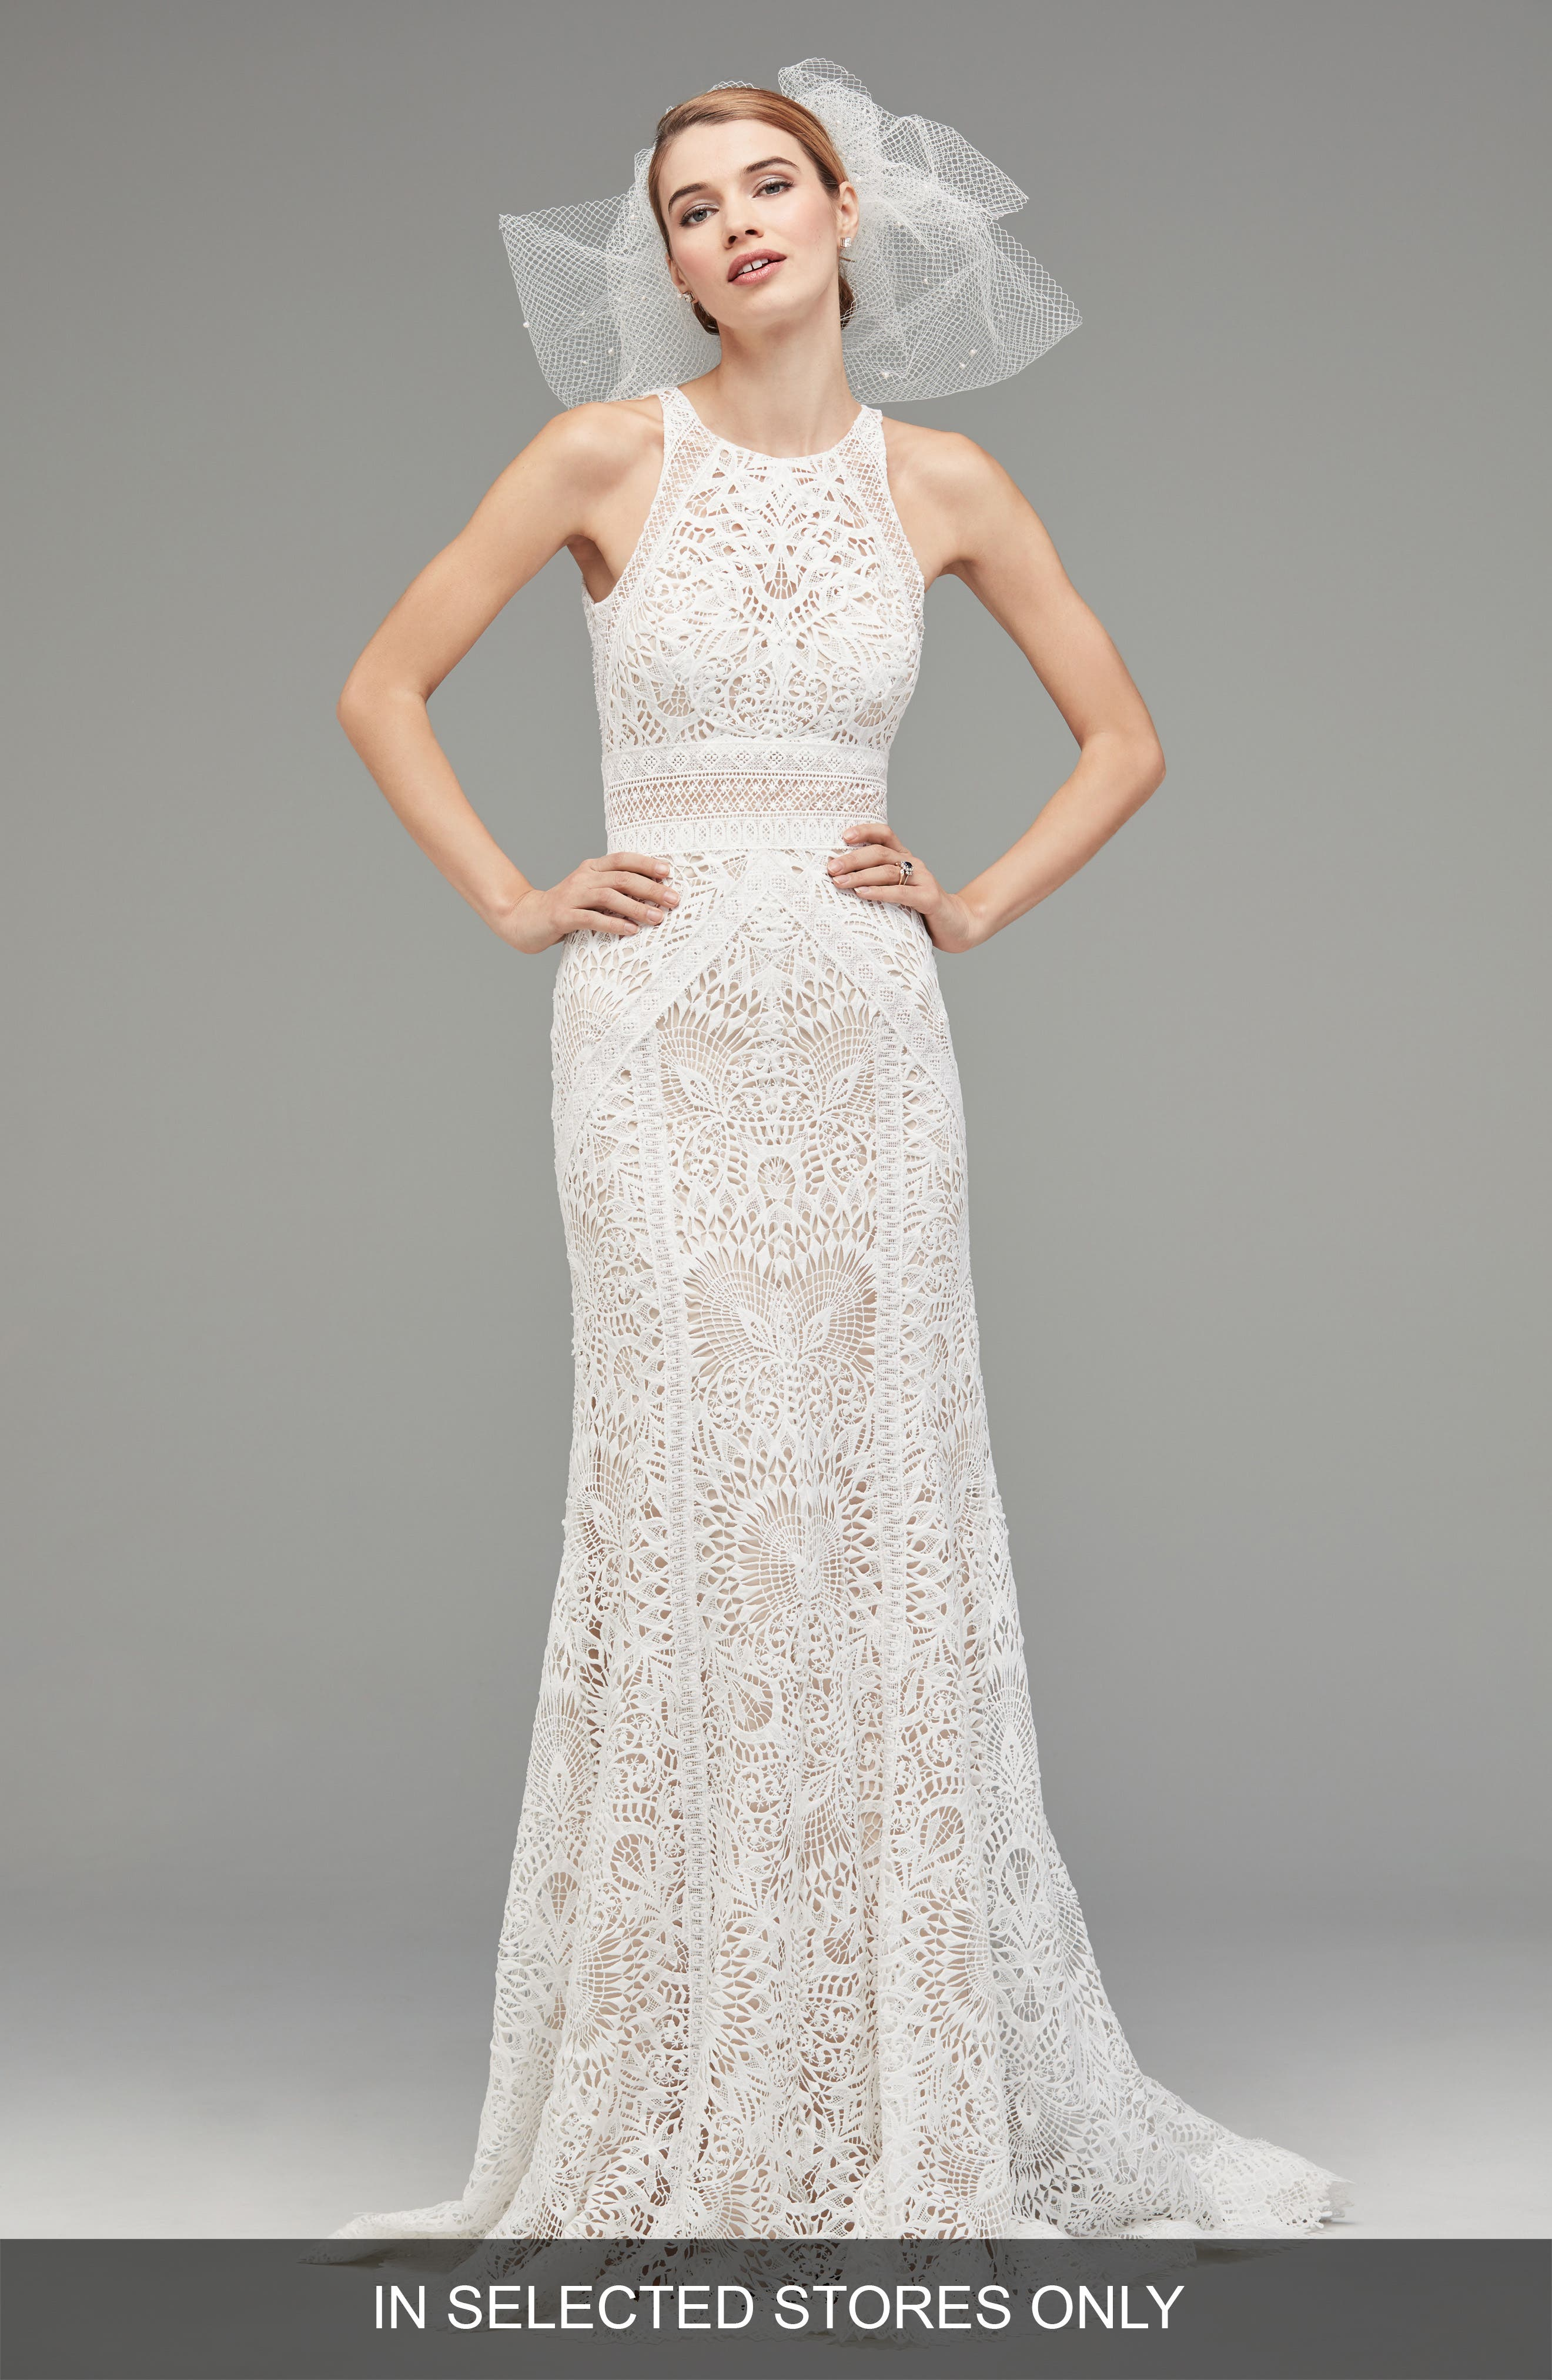 Main Image - Watters Vendela Sleeveless Empire Waist Lace Gown